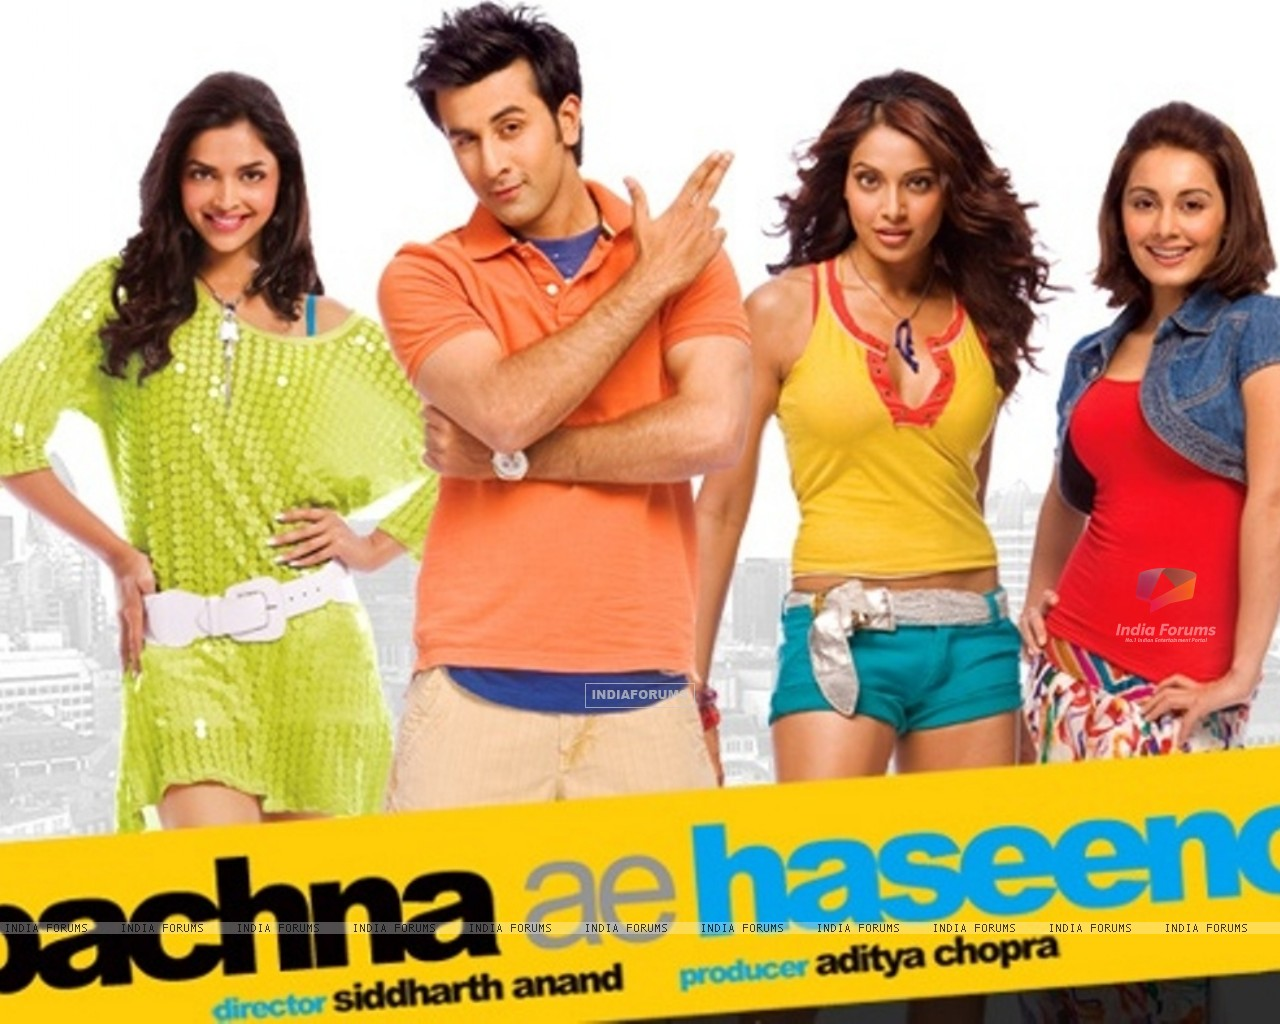 Wallpaper of Bachna Ae Haseeno movie (20514) size:1280x1024